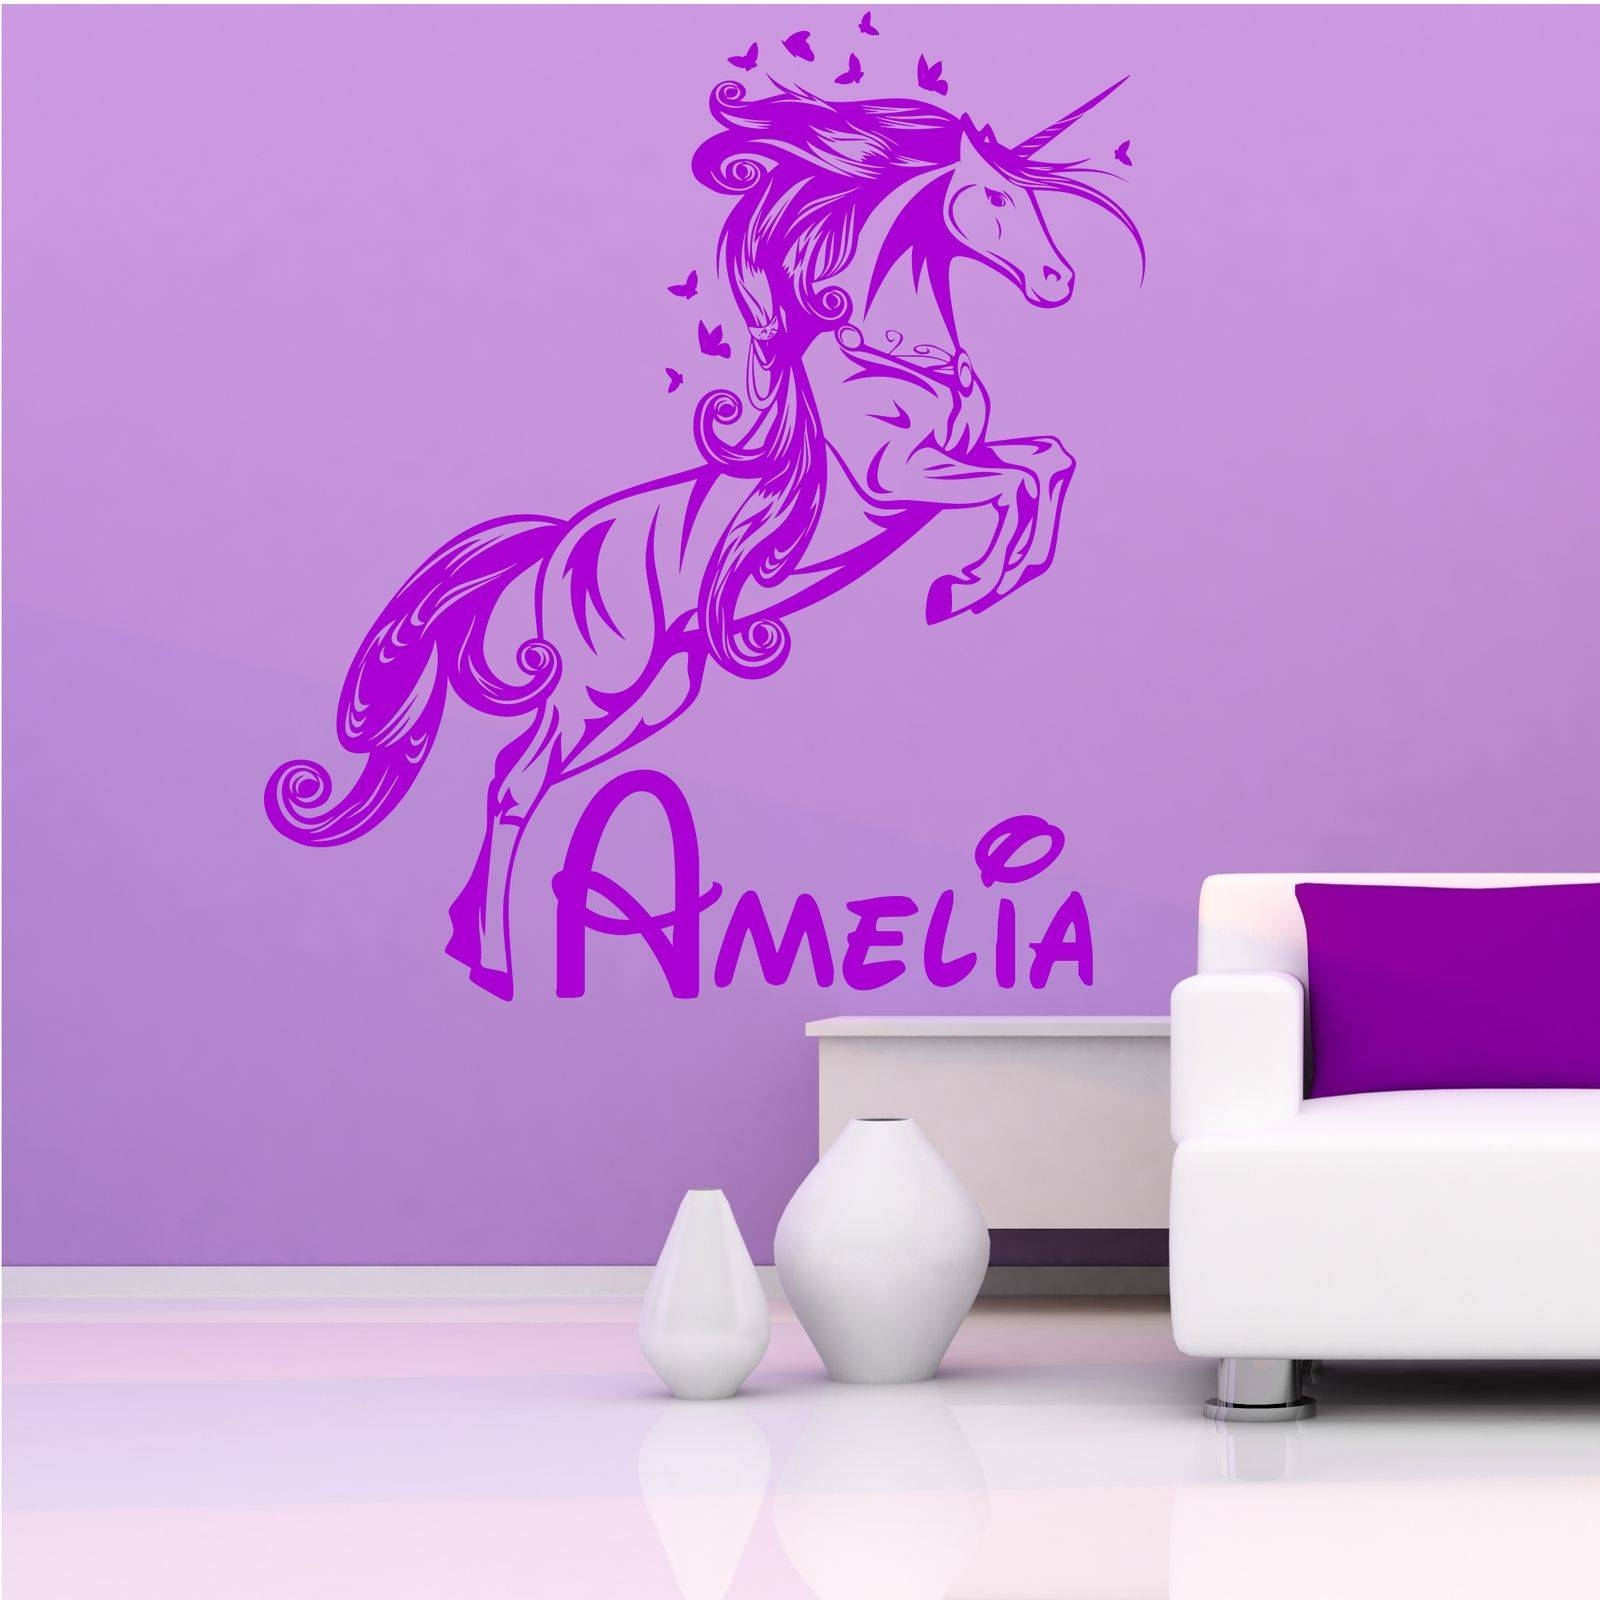 Personalised Unicorn Princess Name Wall Art Sticker Stencil Decal Pertaining To Recent Wall Art For Girls (View 18 of 20)